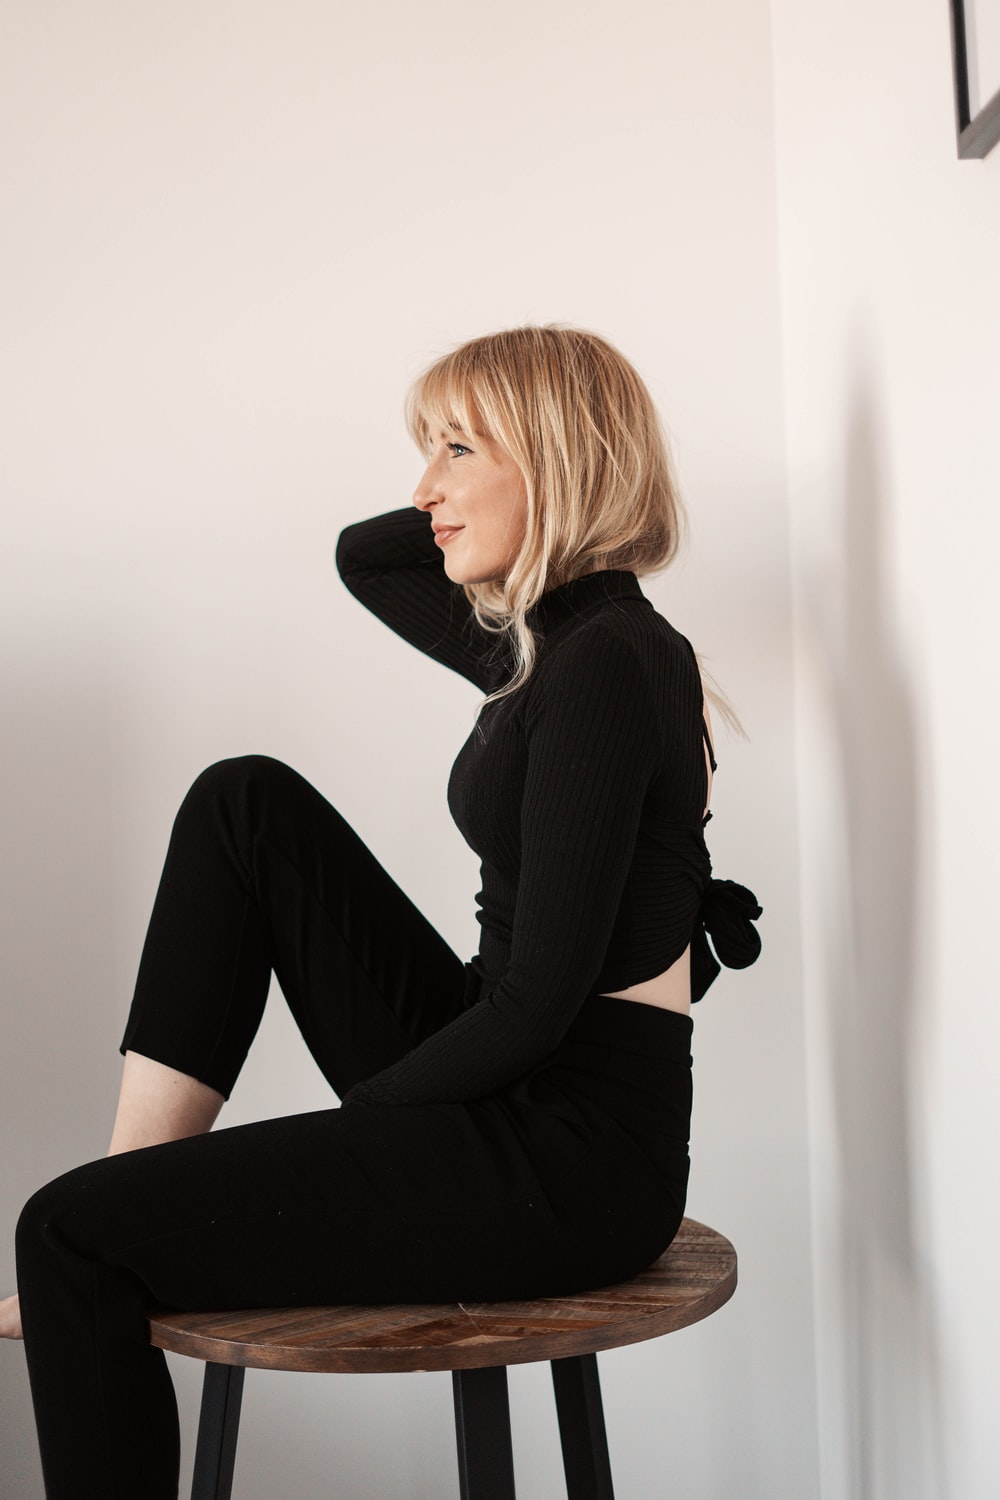 woman in black long sleeve shirt and black pants sitting on white wall